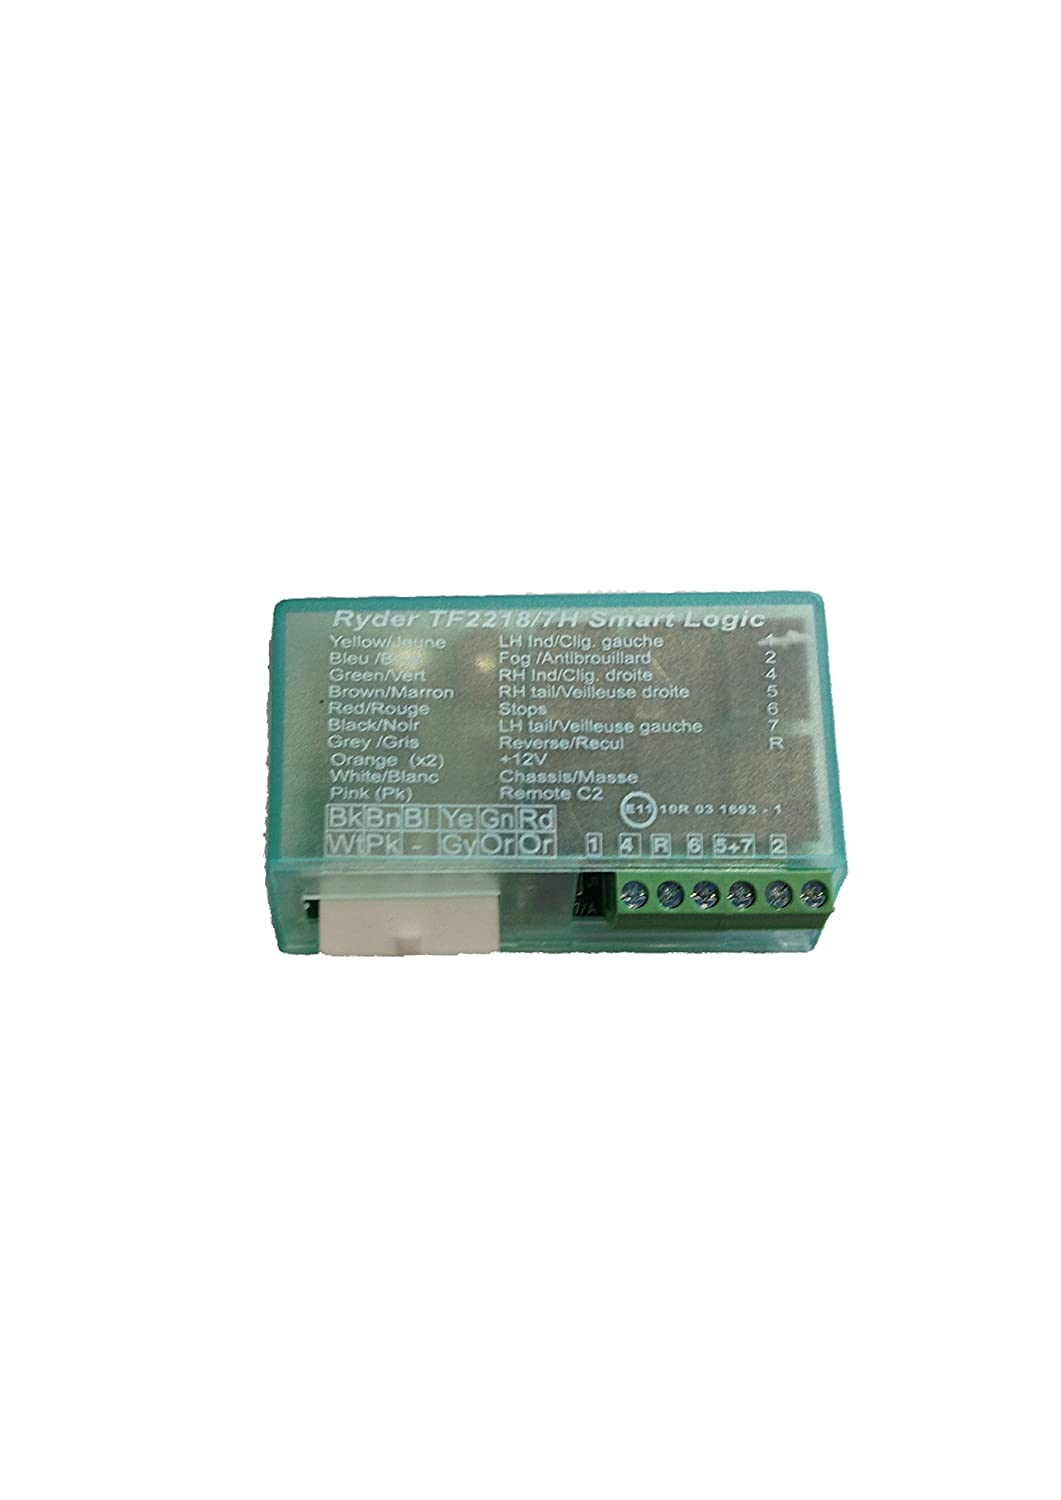 Ryder Split Charge Relay Wiring Diagram A Tf2218 7h Smart Logic 7 Way